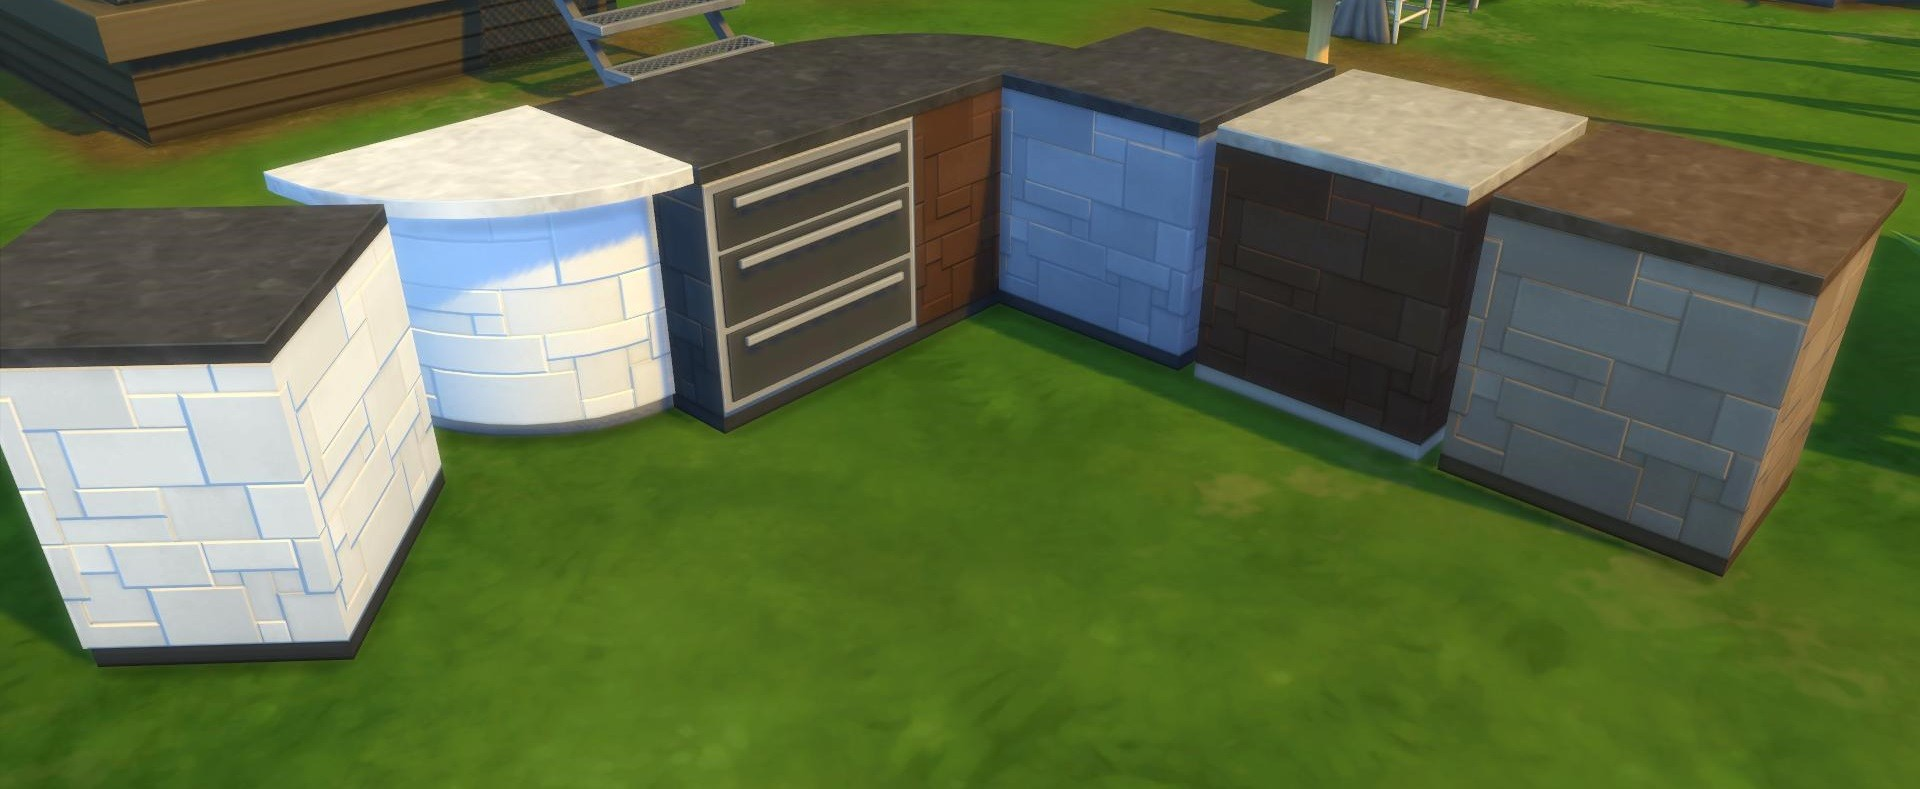 Sims 4 Ambiance Patio Meubles 08 Next Stage